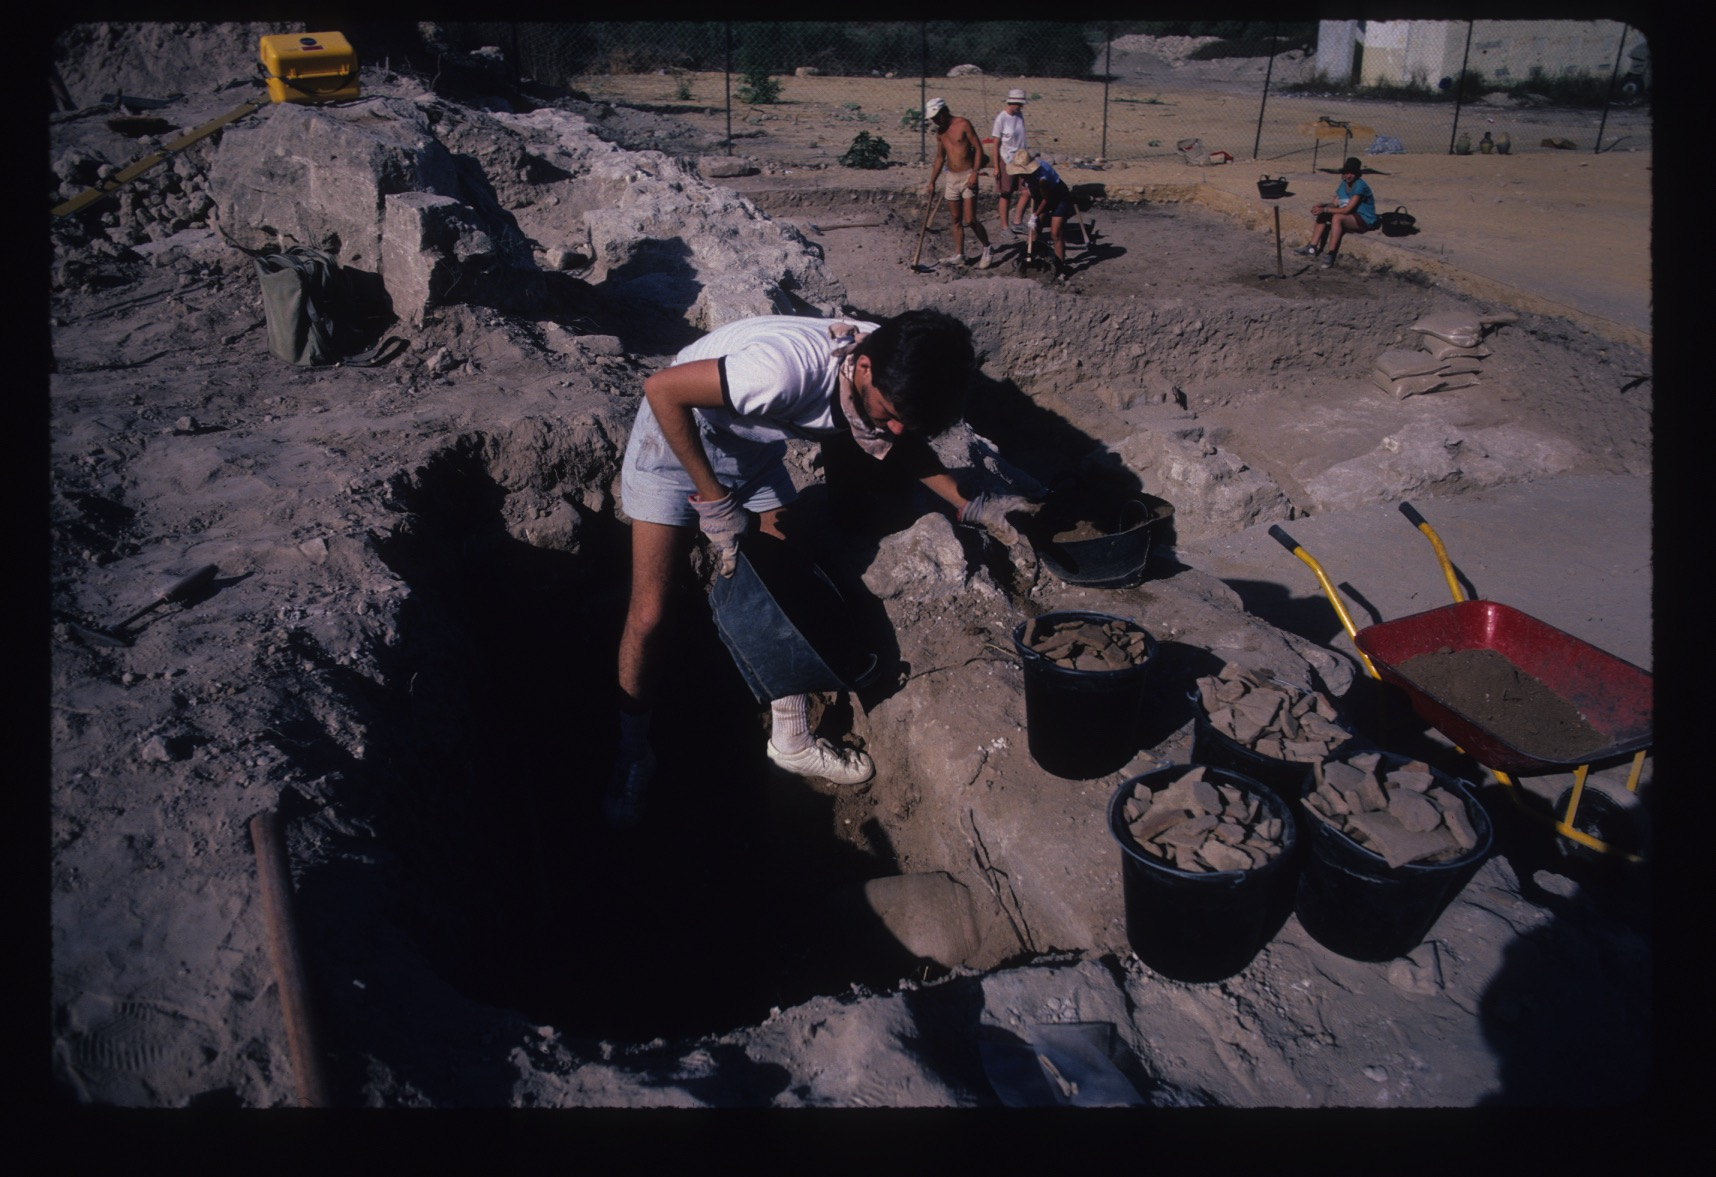 Digging dirt and collecting pottery, 1985